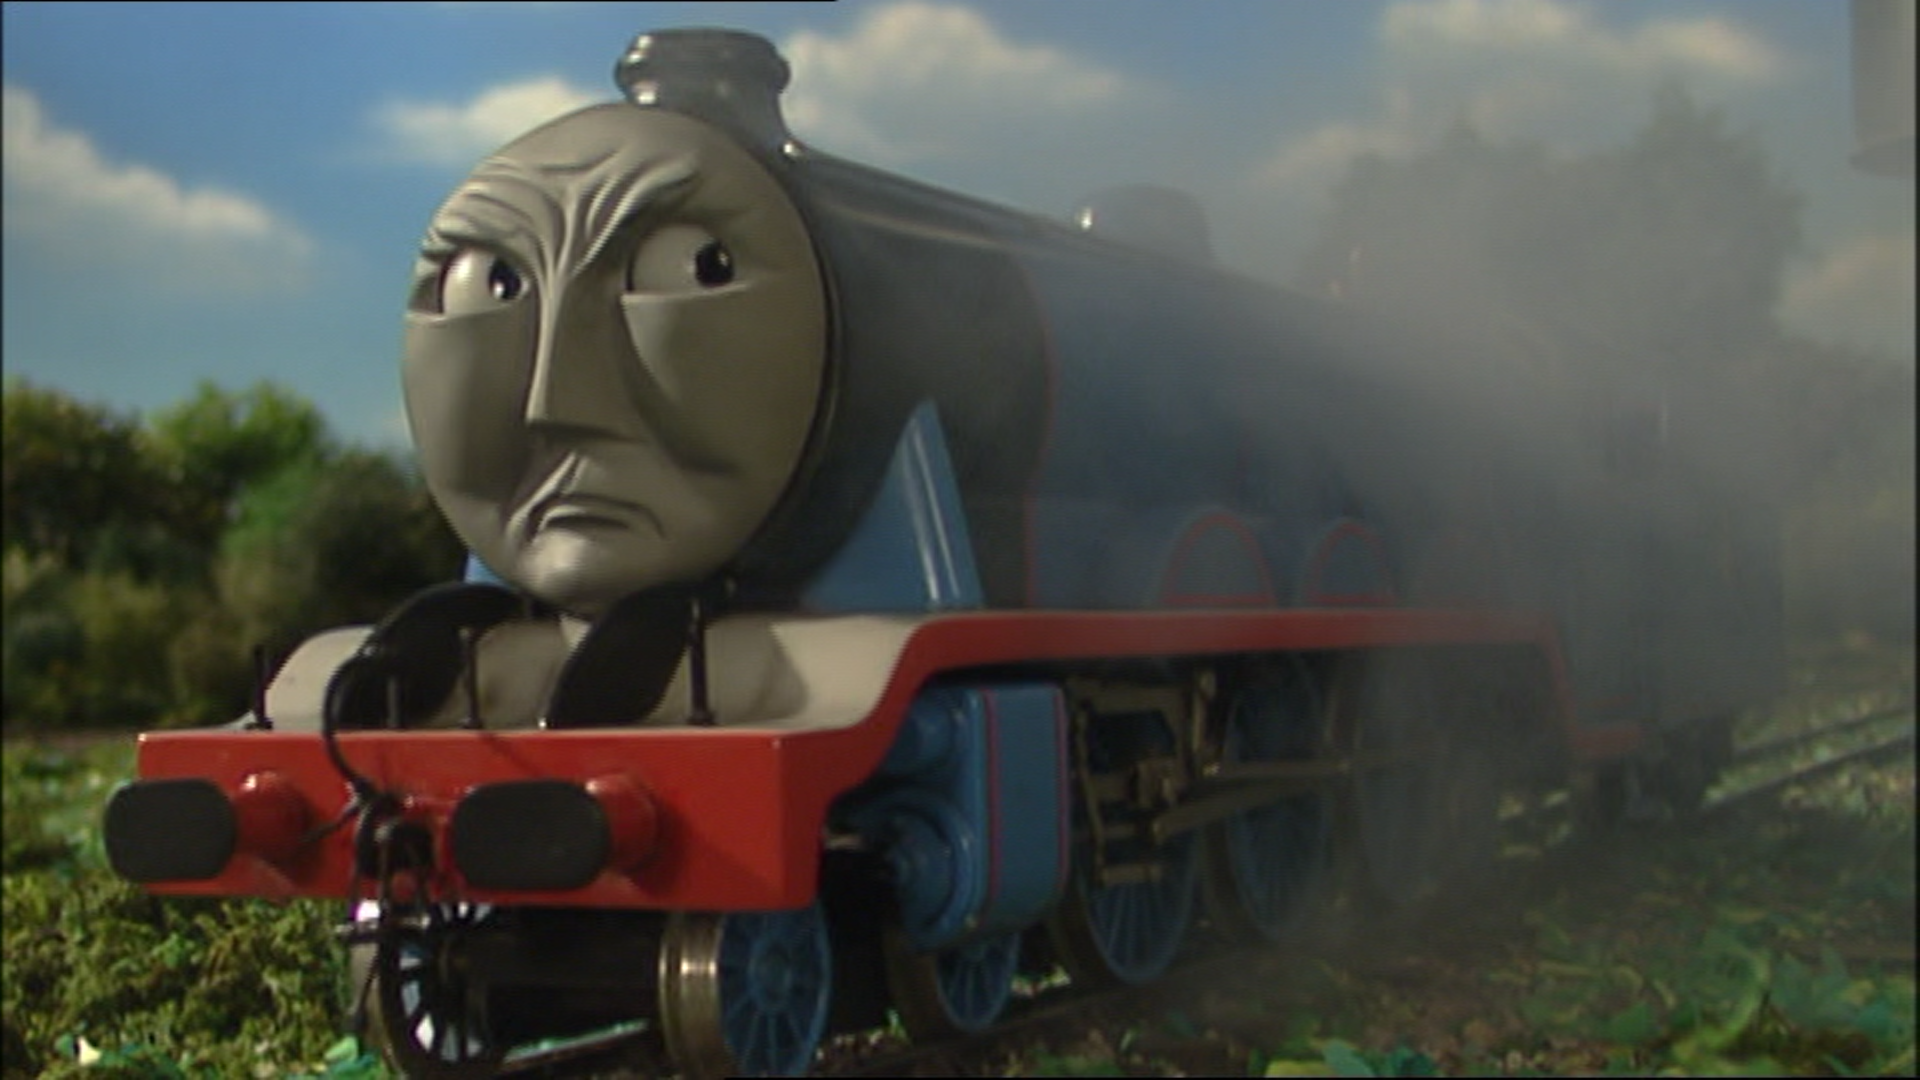 Image Percyandthemagiccarpet38 Png Thomas The Tank